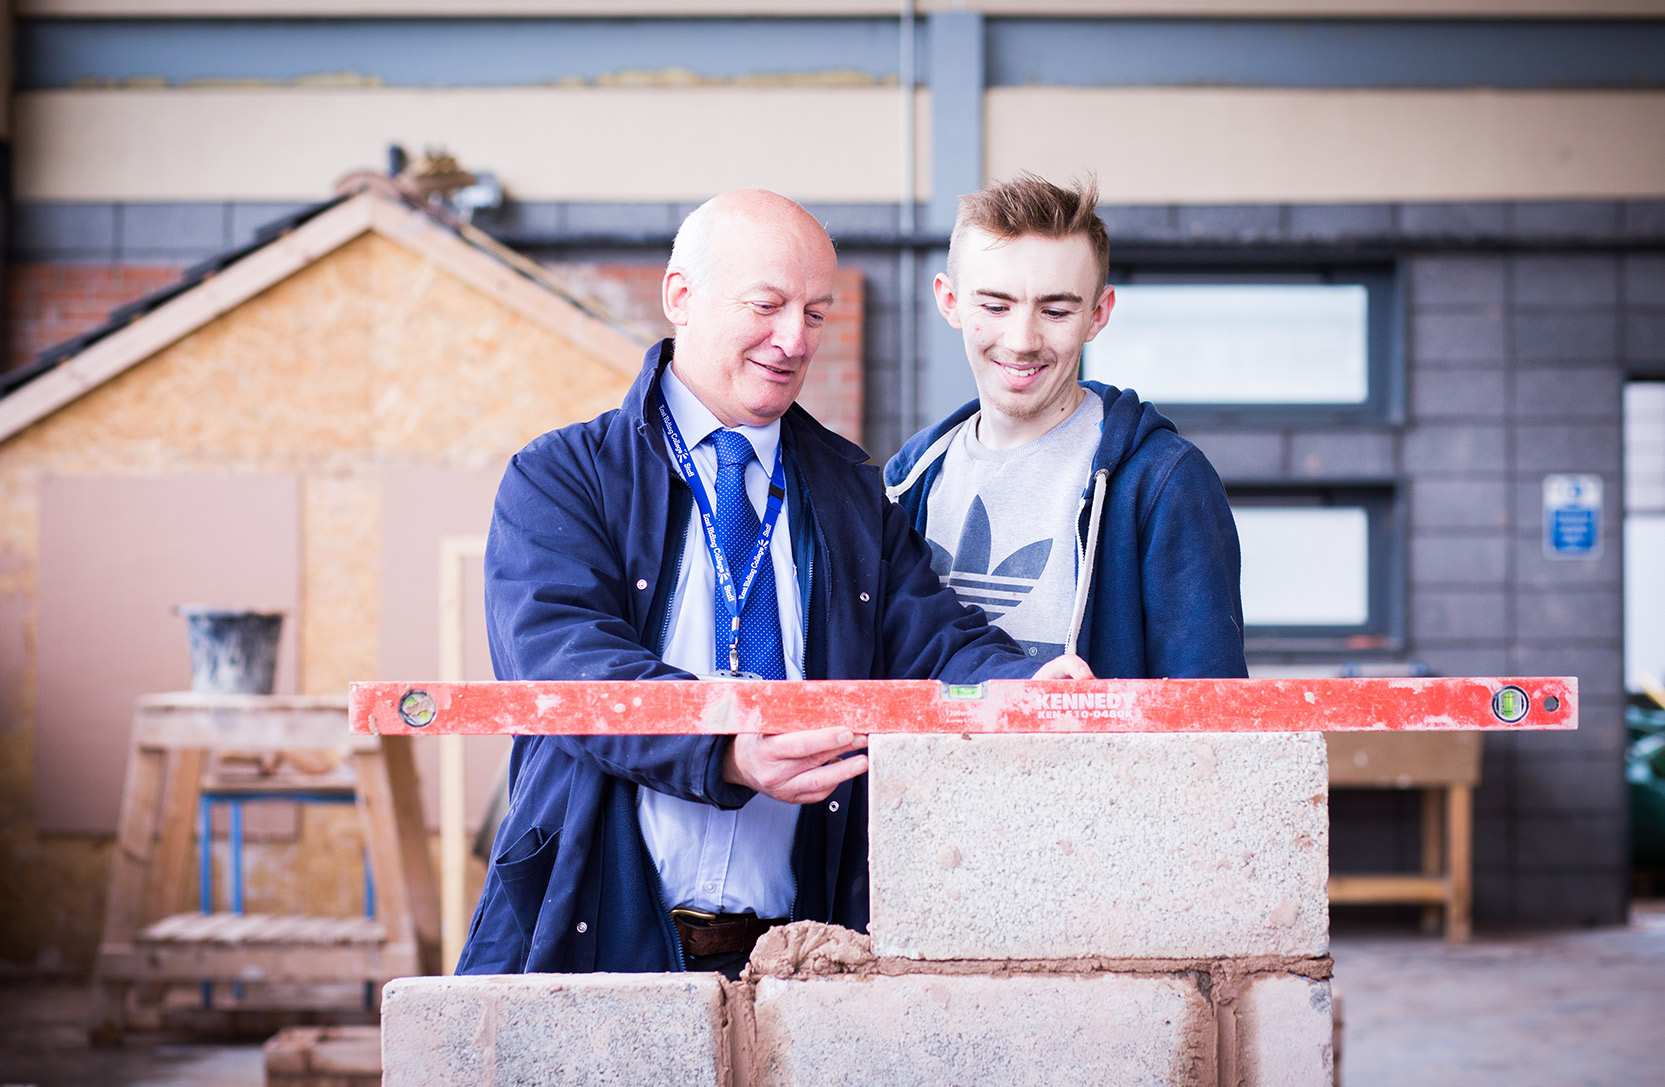 Learner and teacher using a spirit level.